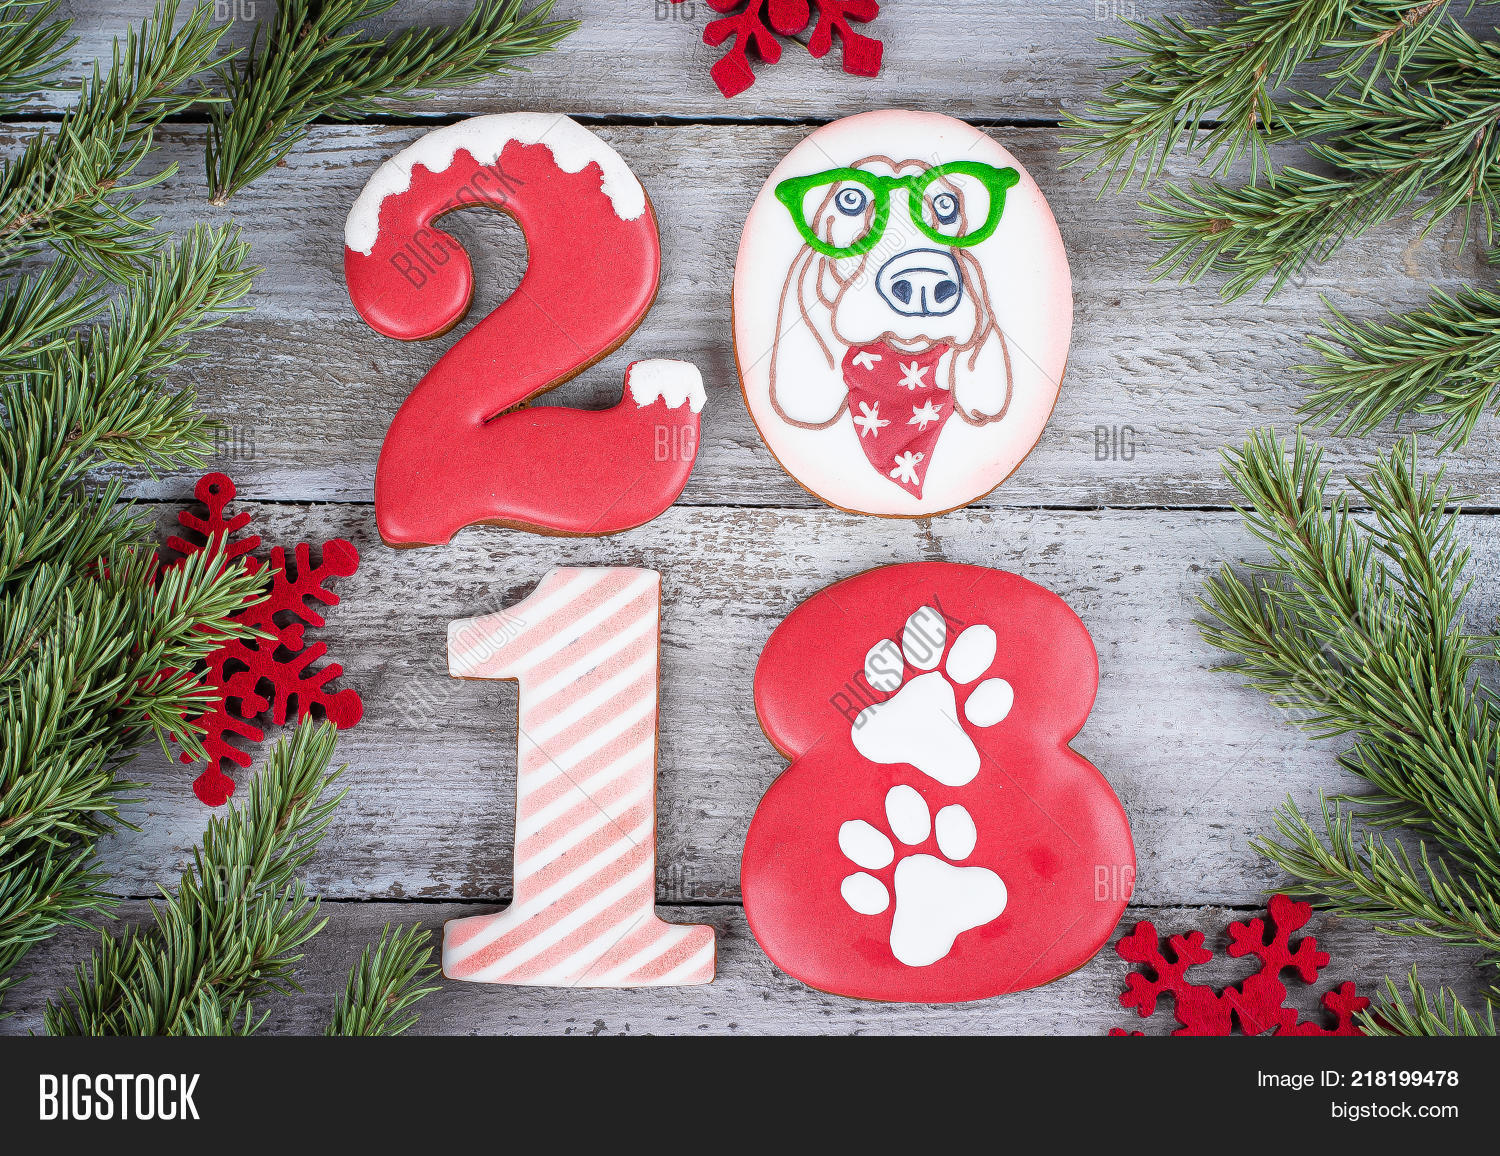 Christmas Cookies Image Photo Free Trial Bigstock